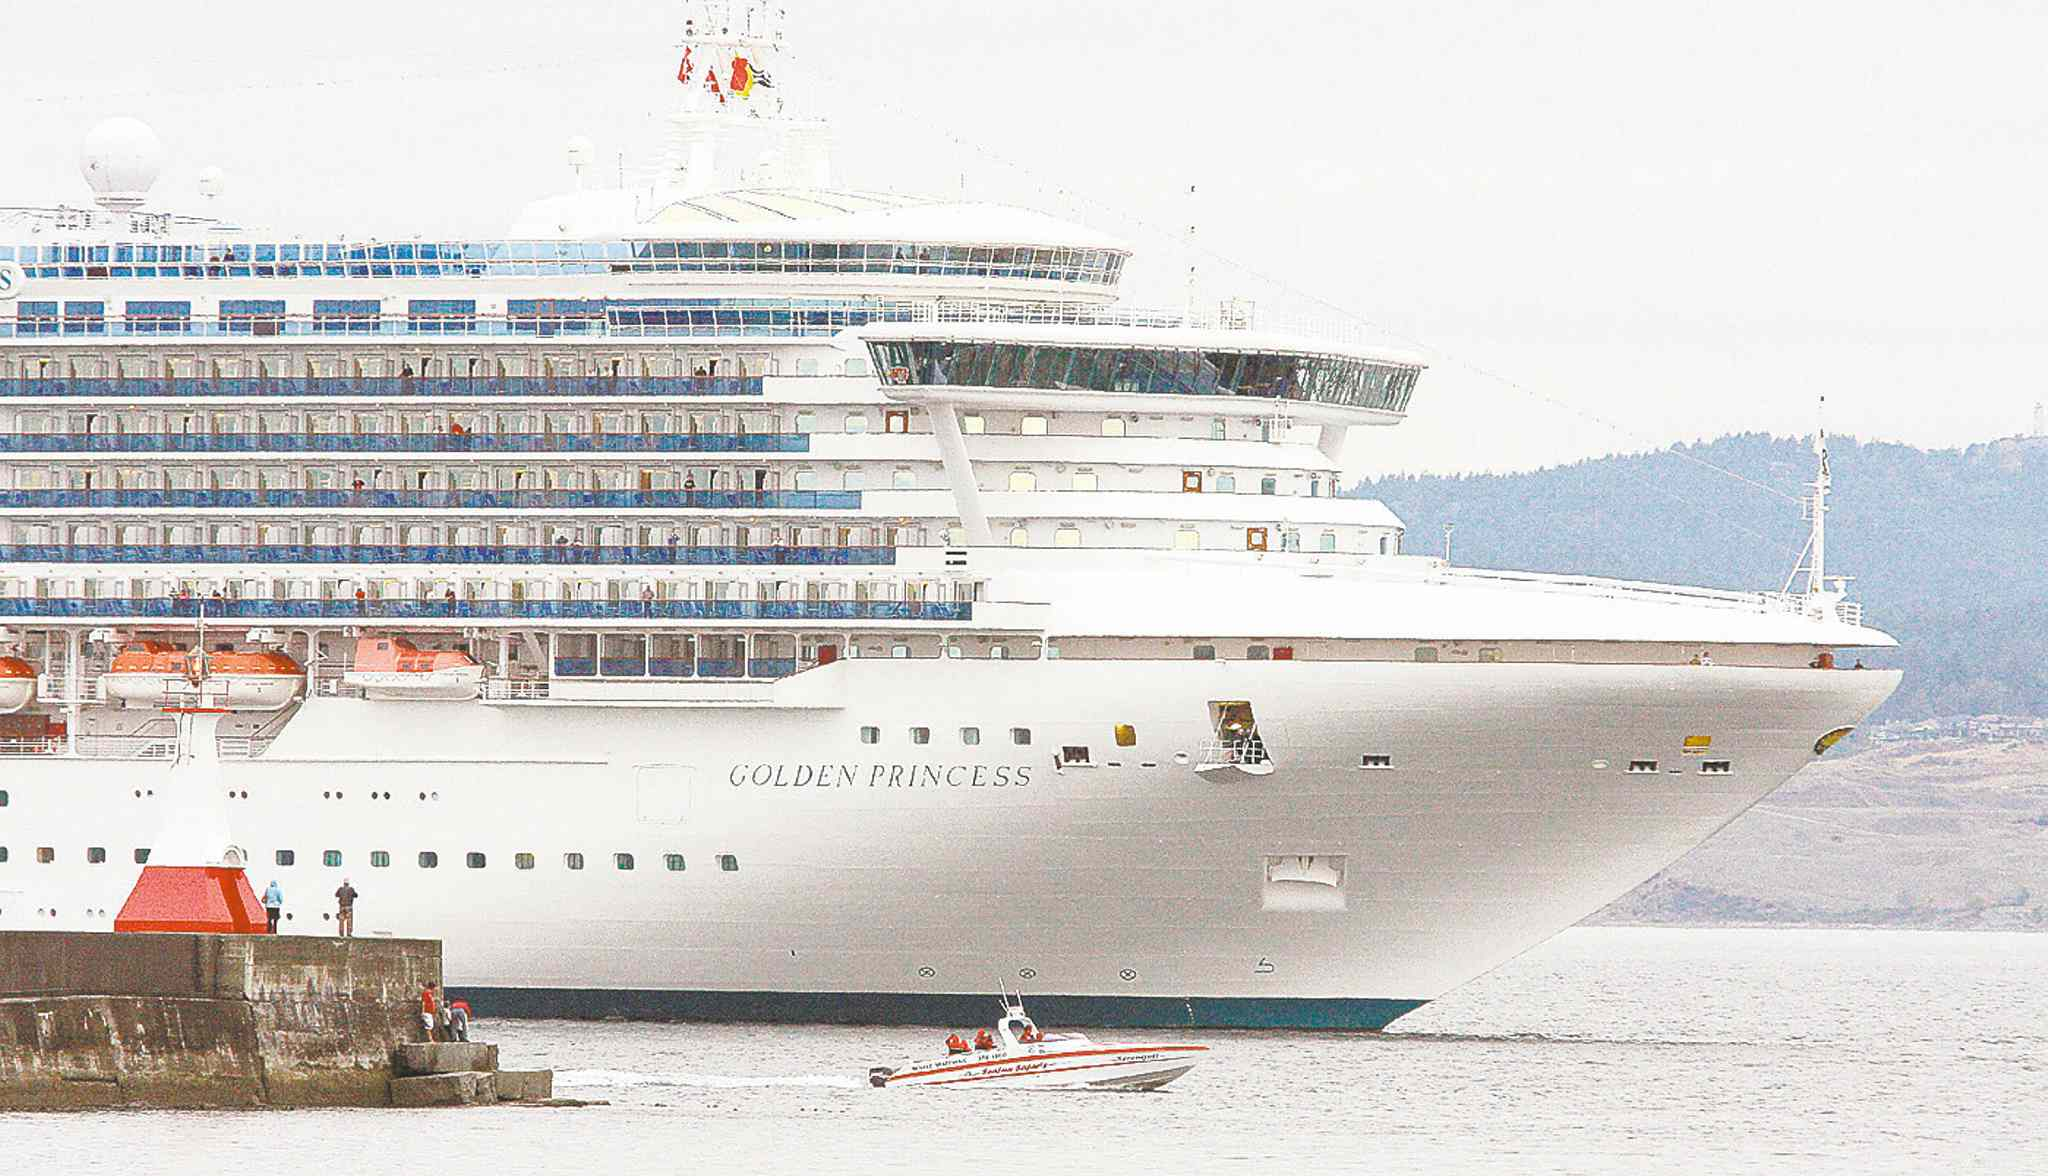 The 951-foot Golden Princess.